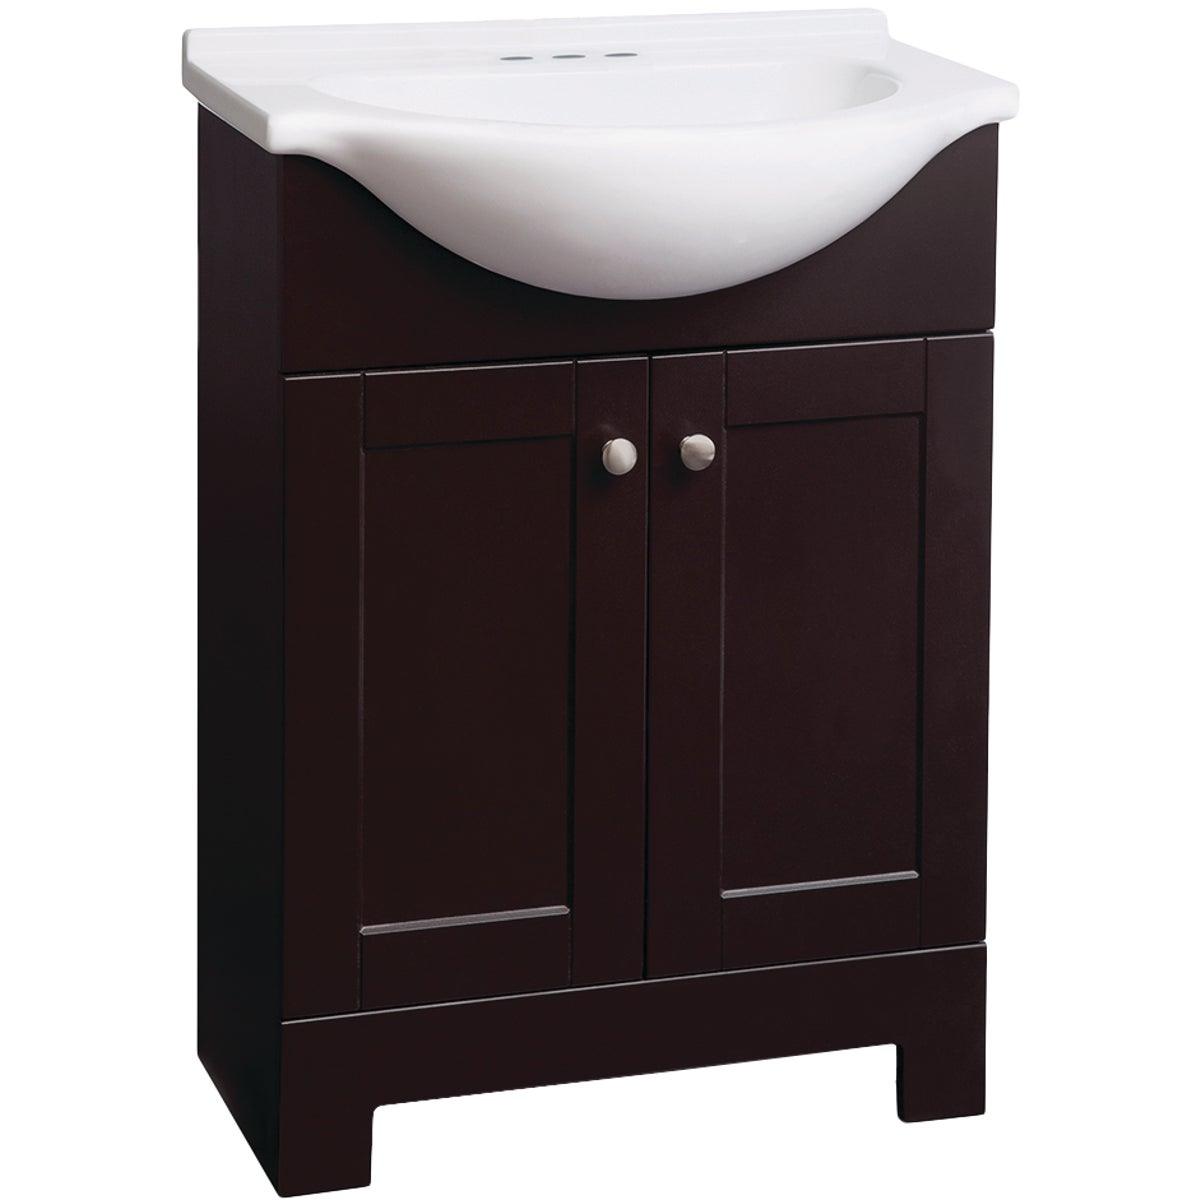 ESPRESSO VANITY COMBO - 541680 by Design House  Dhi